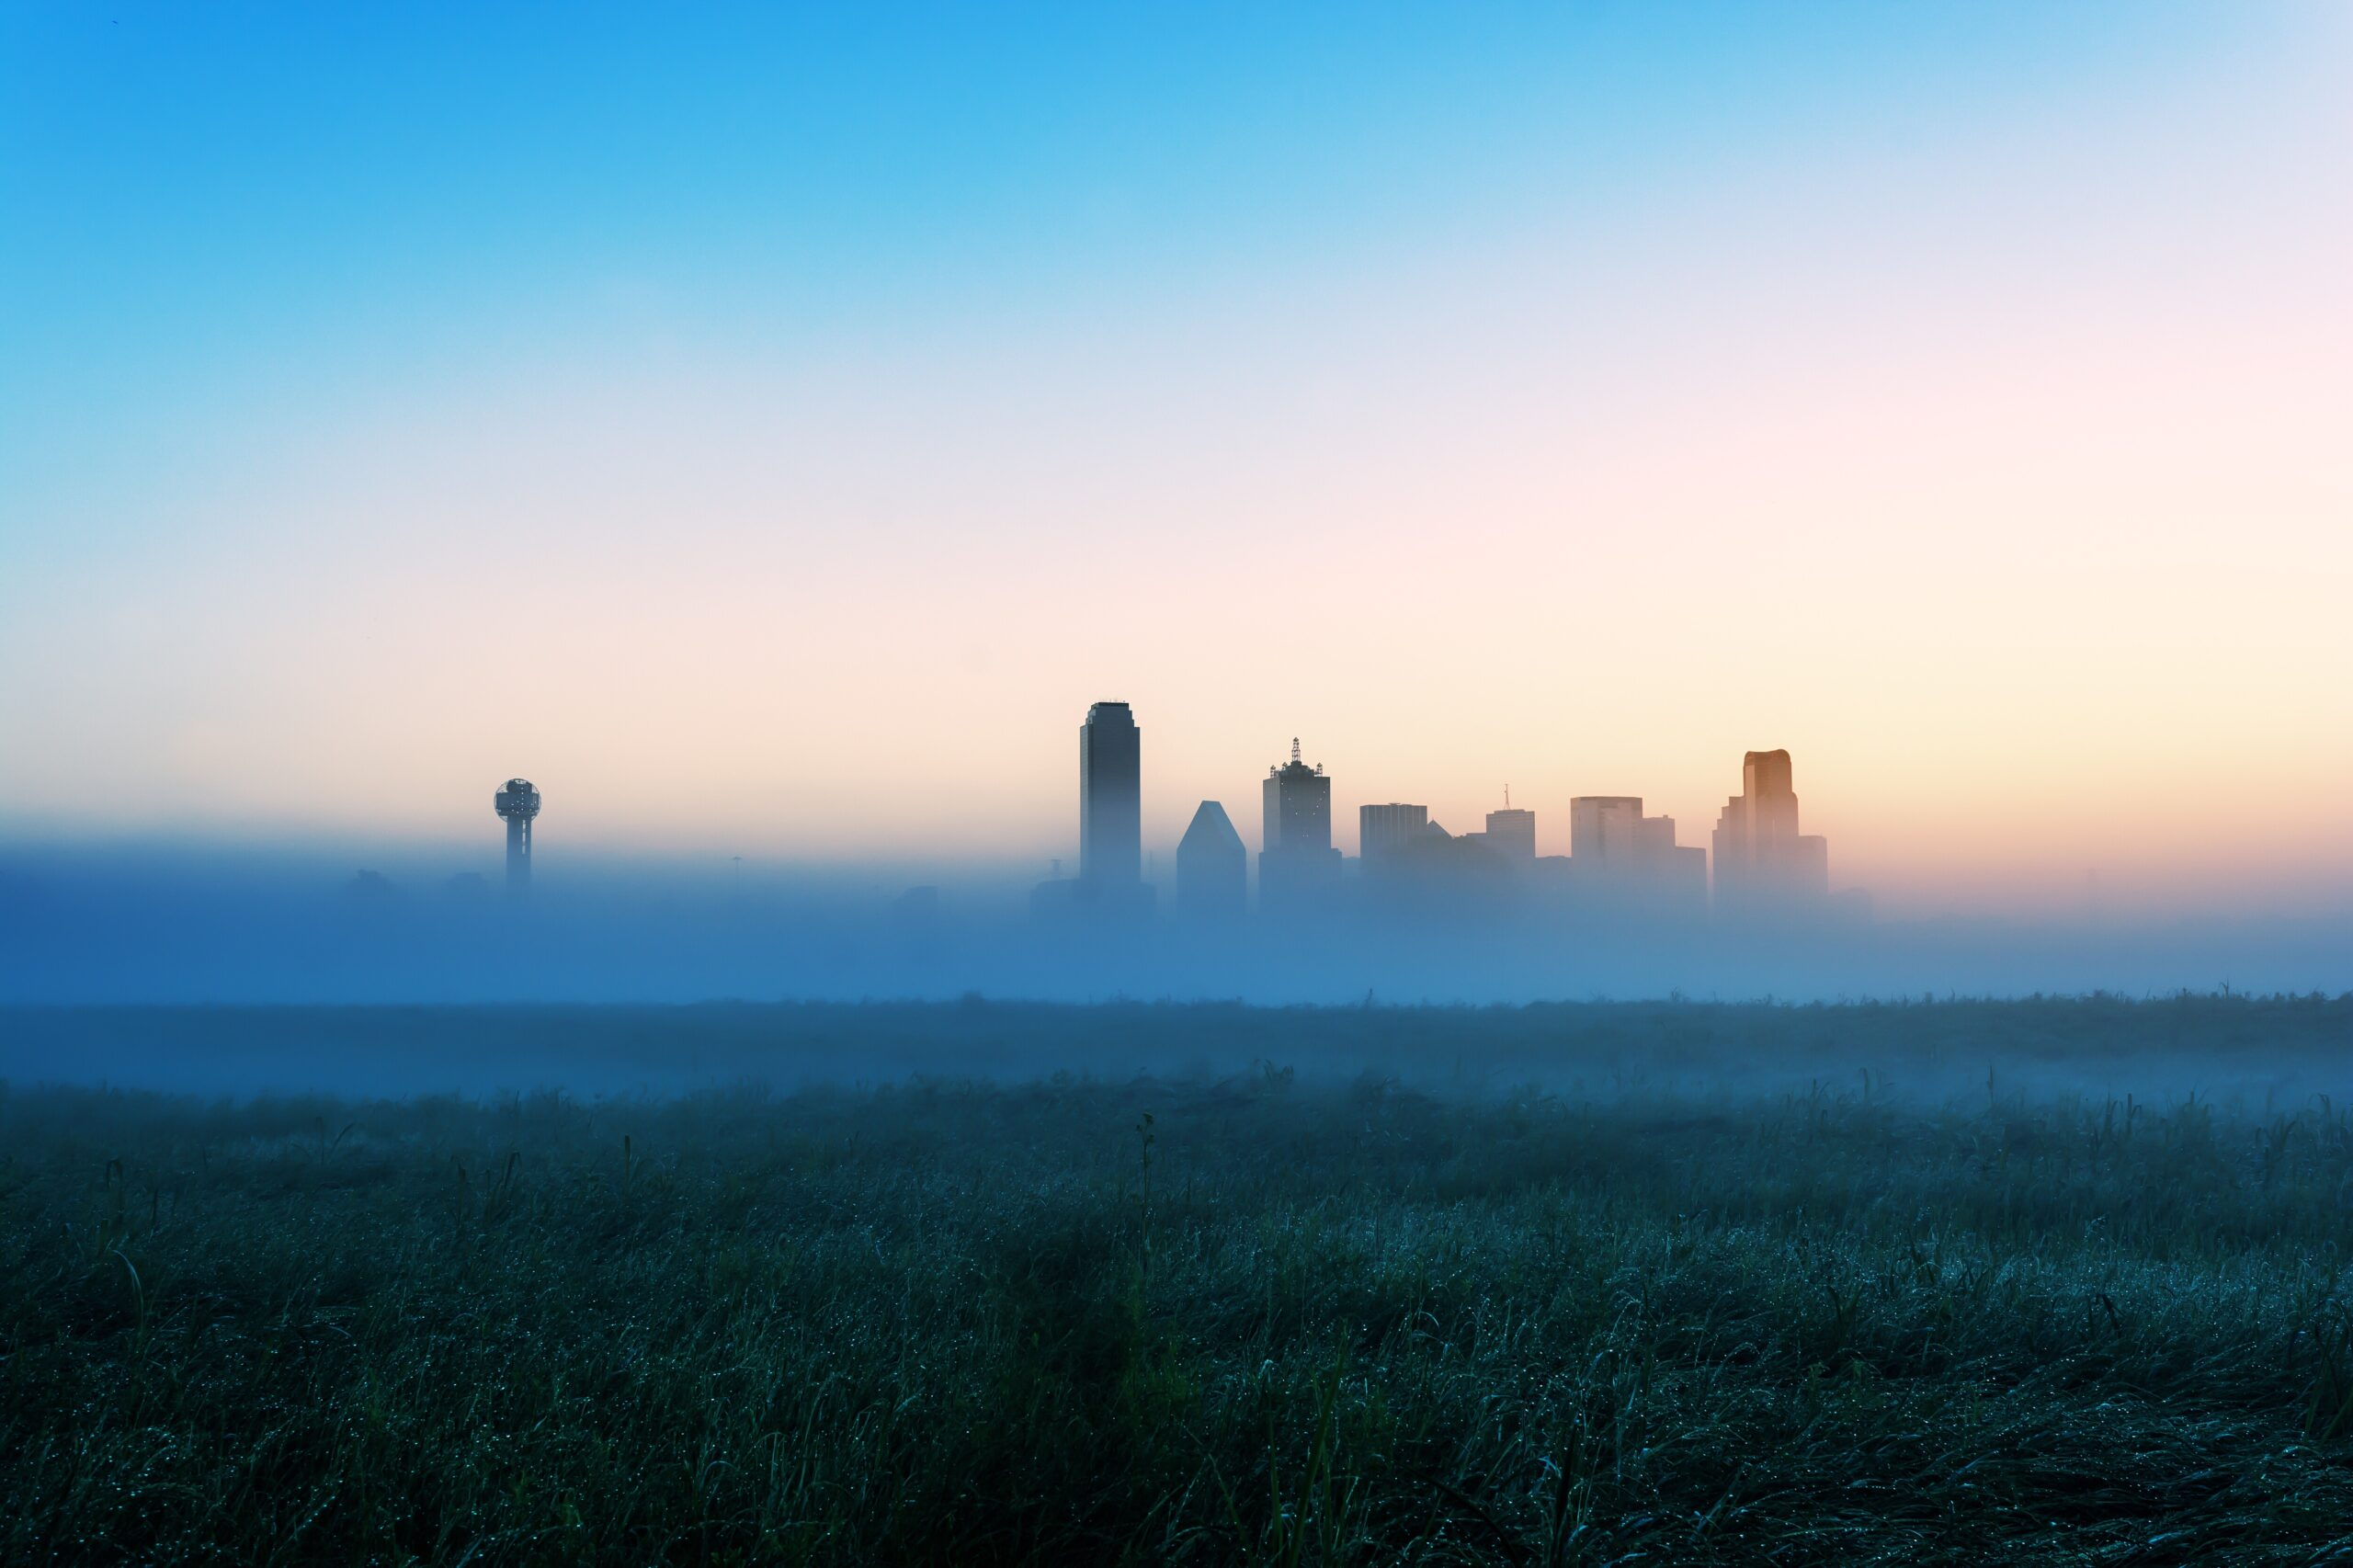 Foggy Sunrise in downtown Dallas from the trinity river